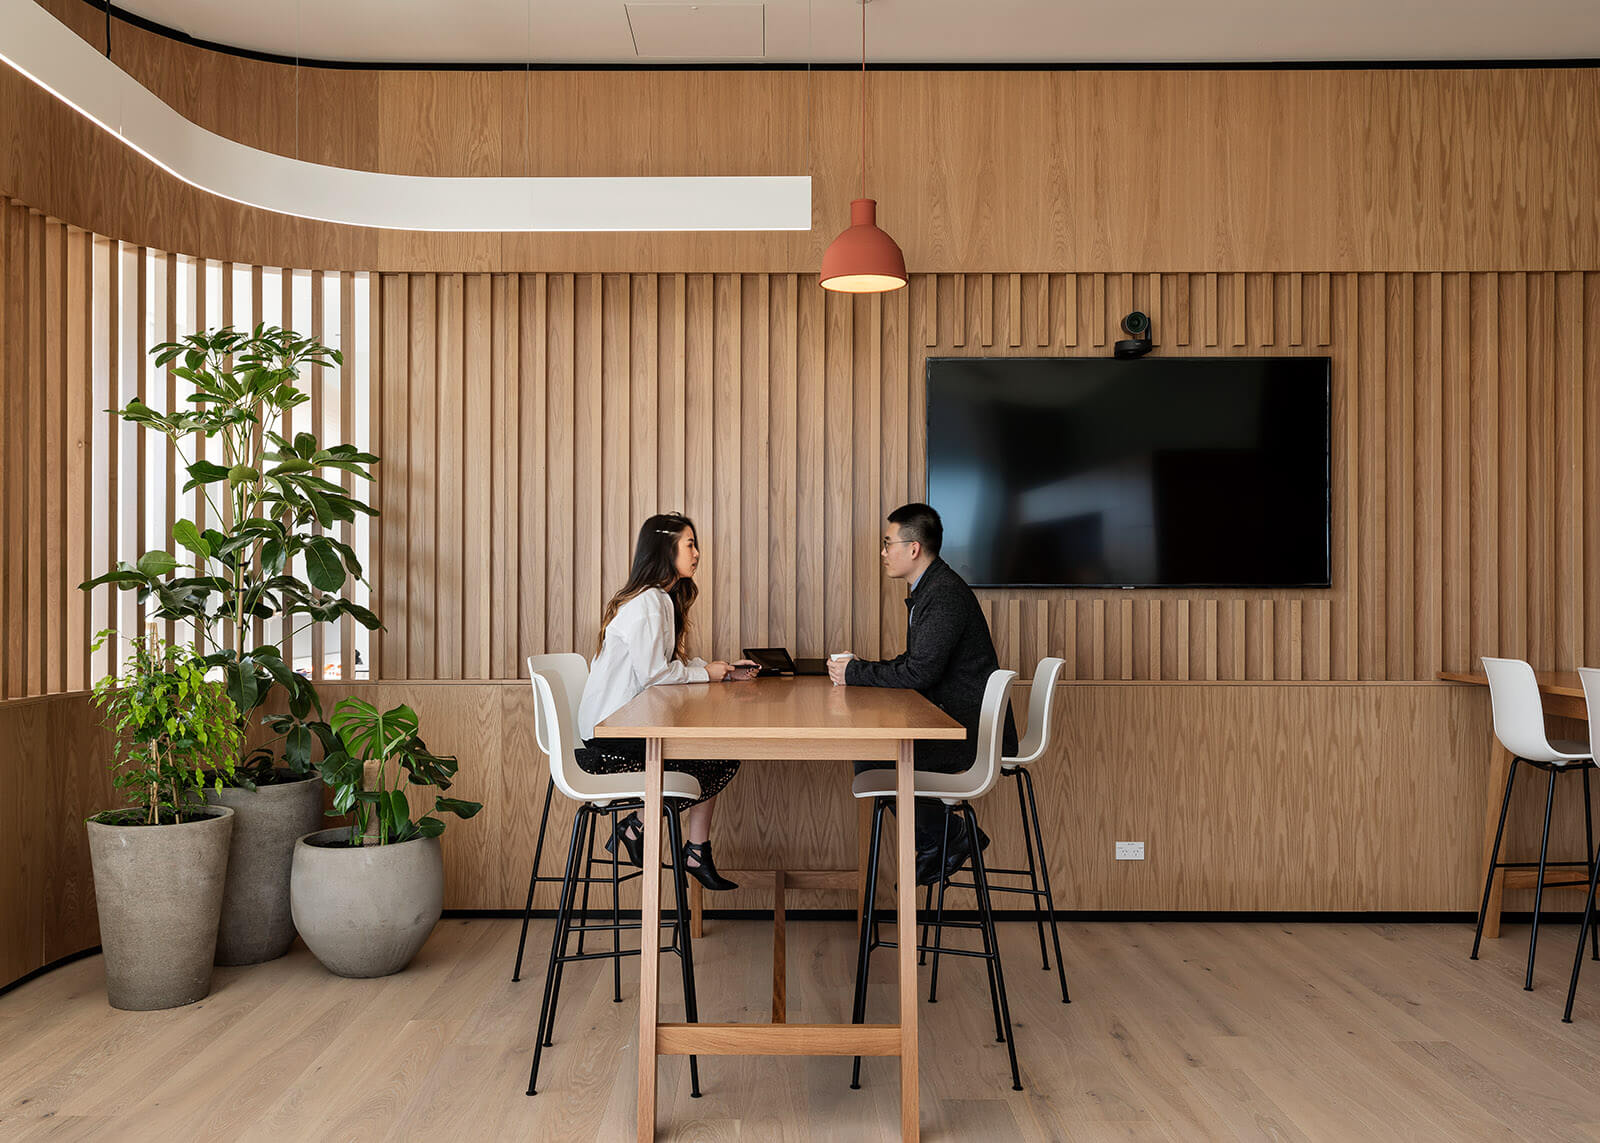 Flexible spaces for collaboration